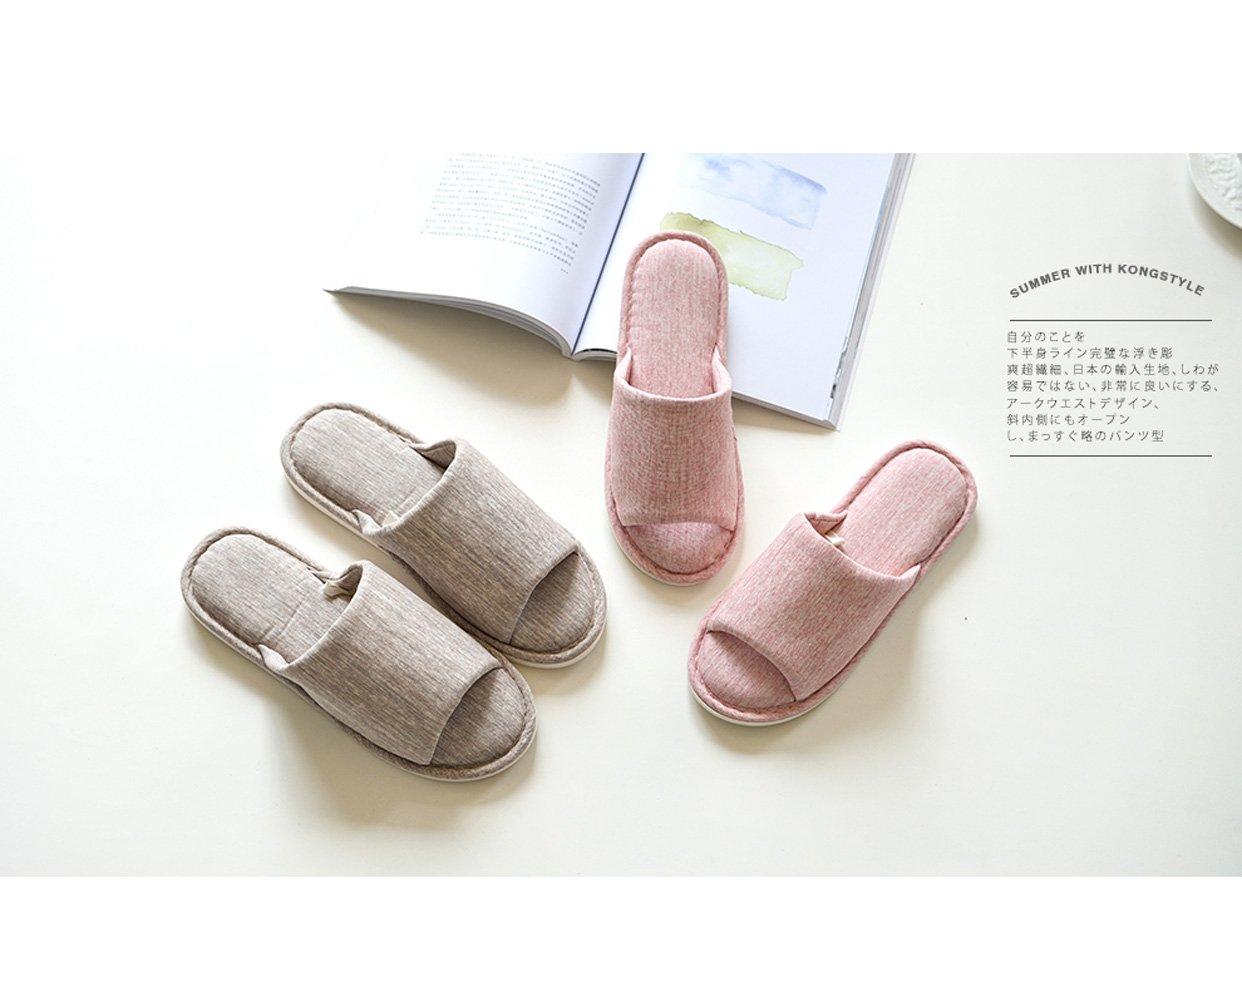 Asifn Indoor Home Slippers Memory Foam Men Women Cotton Cozy Massage Flax House Casual House (7.5 US Women/6 US Men, Pink) by Asifn (Image #5)